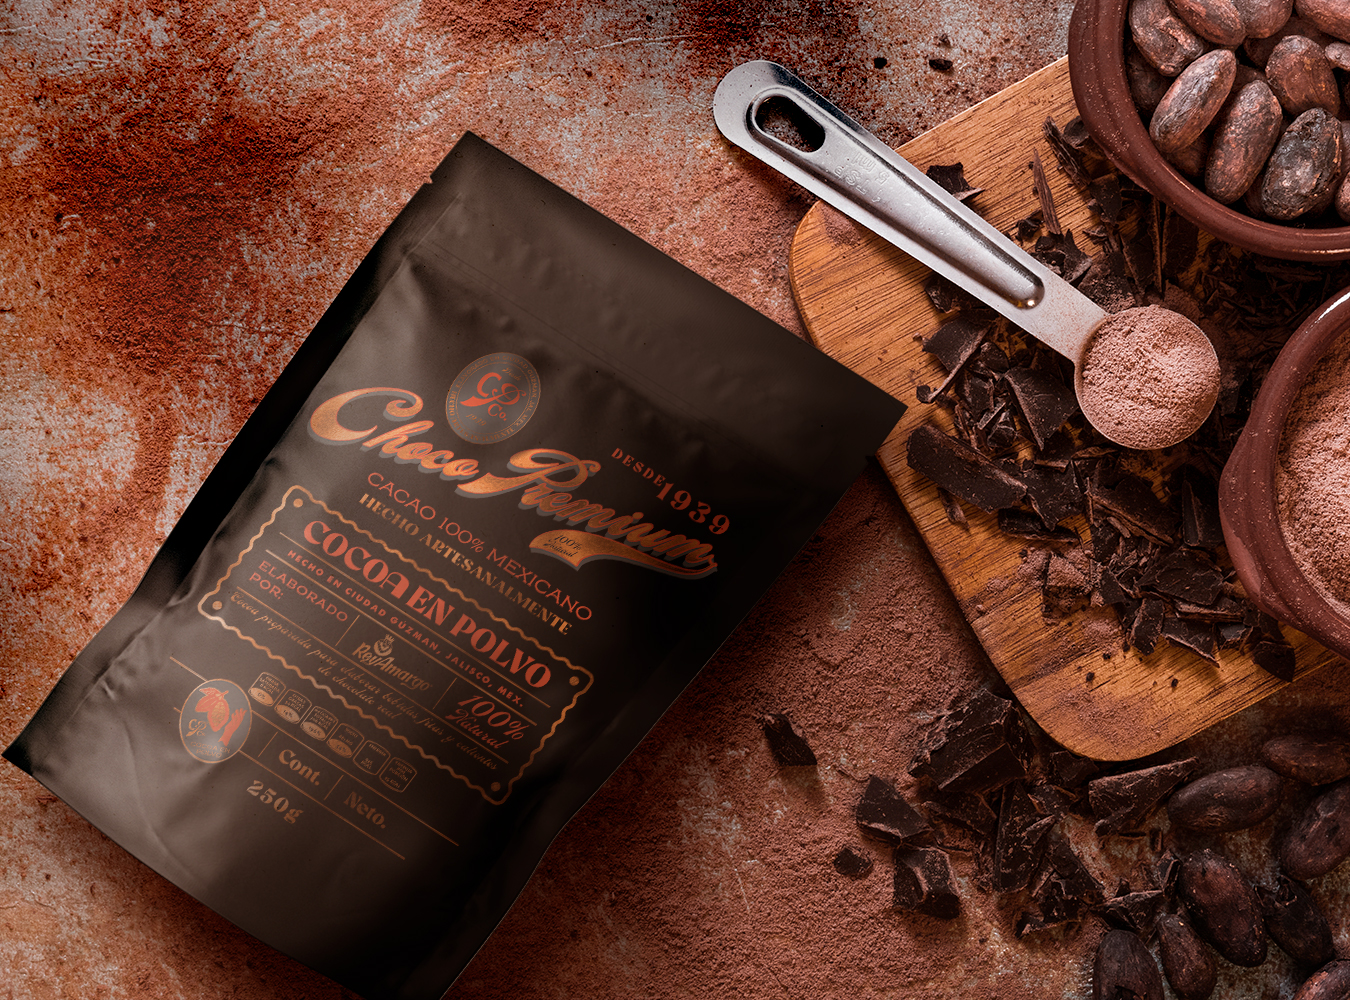 Branding and Packaging Design for Premium Cocoa Mix Made in Mexico